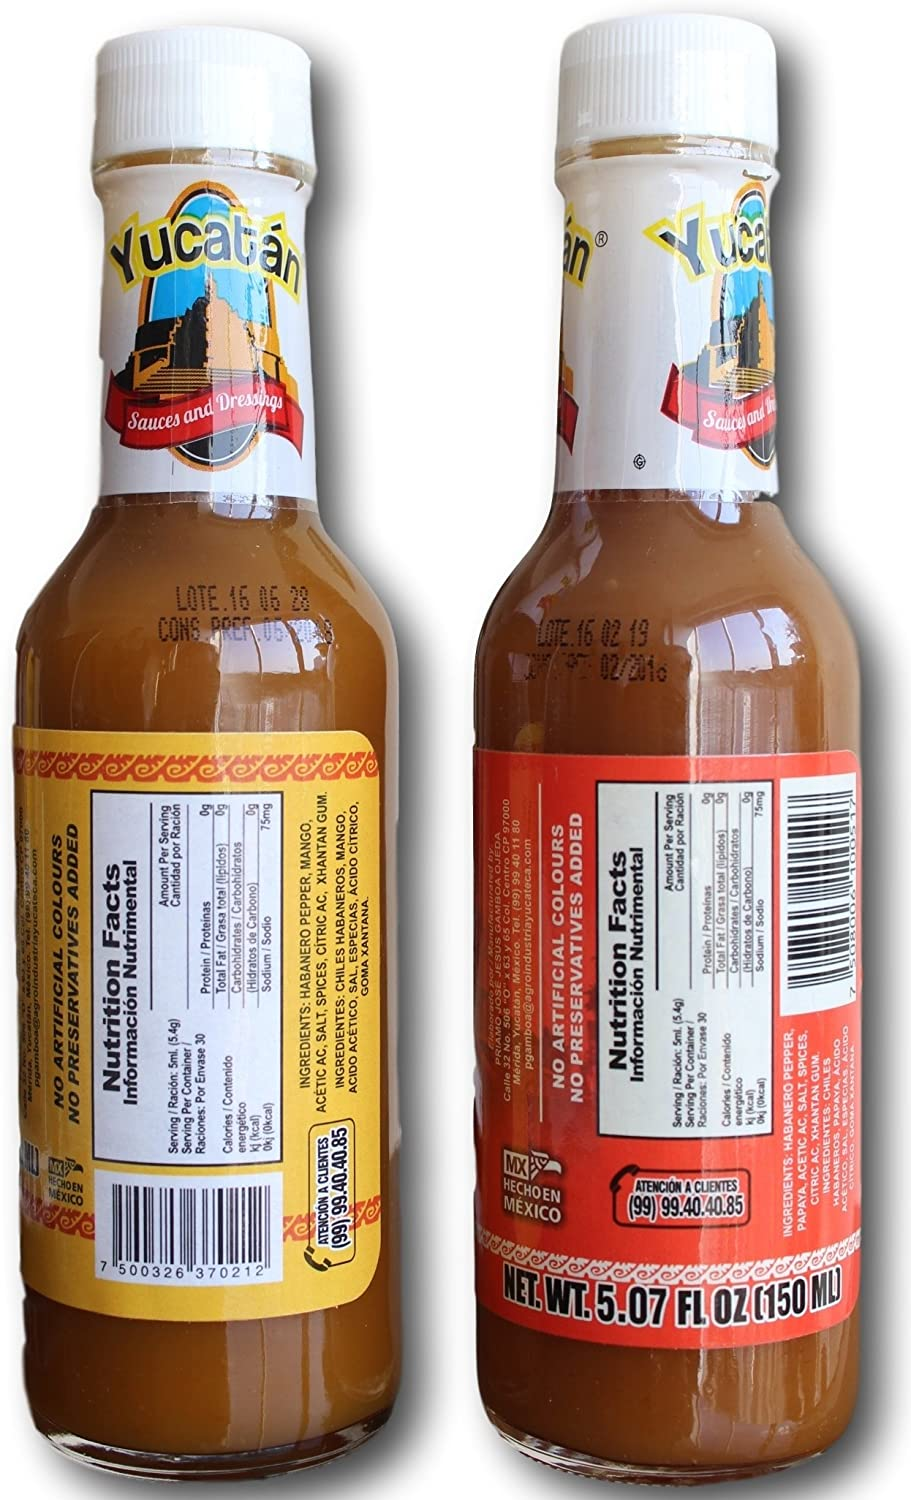 Amazon.com : Gourmet Hot Sauce Yucatan Fruit Habanero & Mango - Papaya 5 oz (2 pack) : Grocery & Gourmet Food